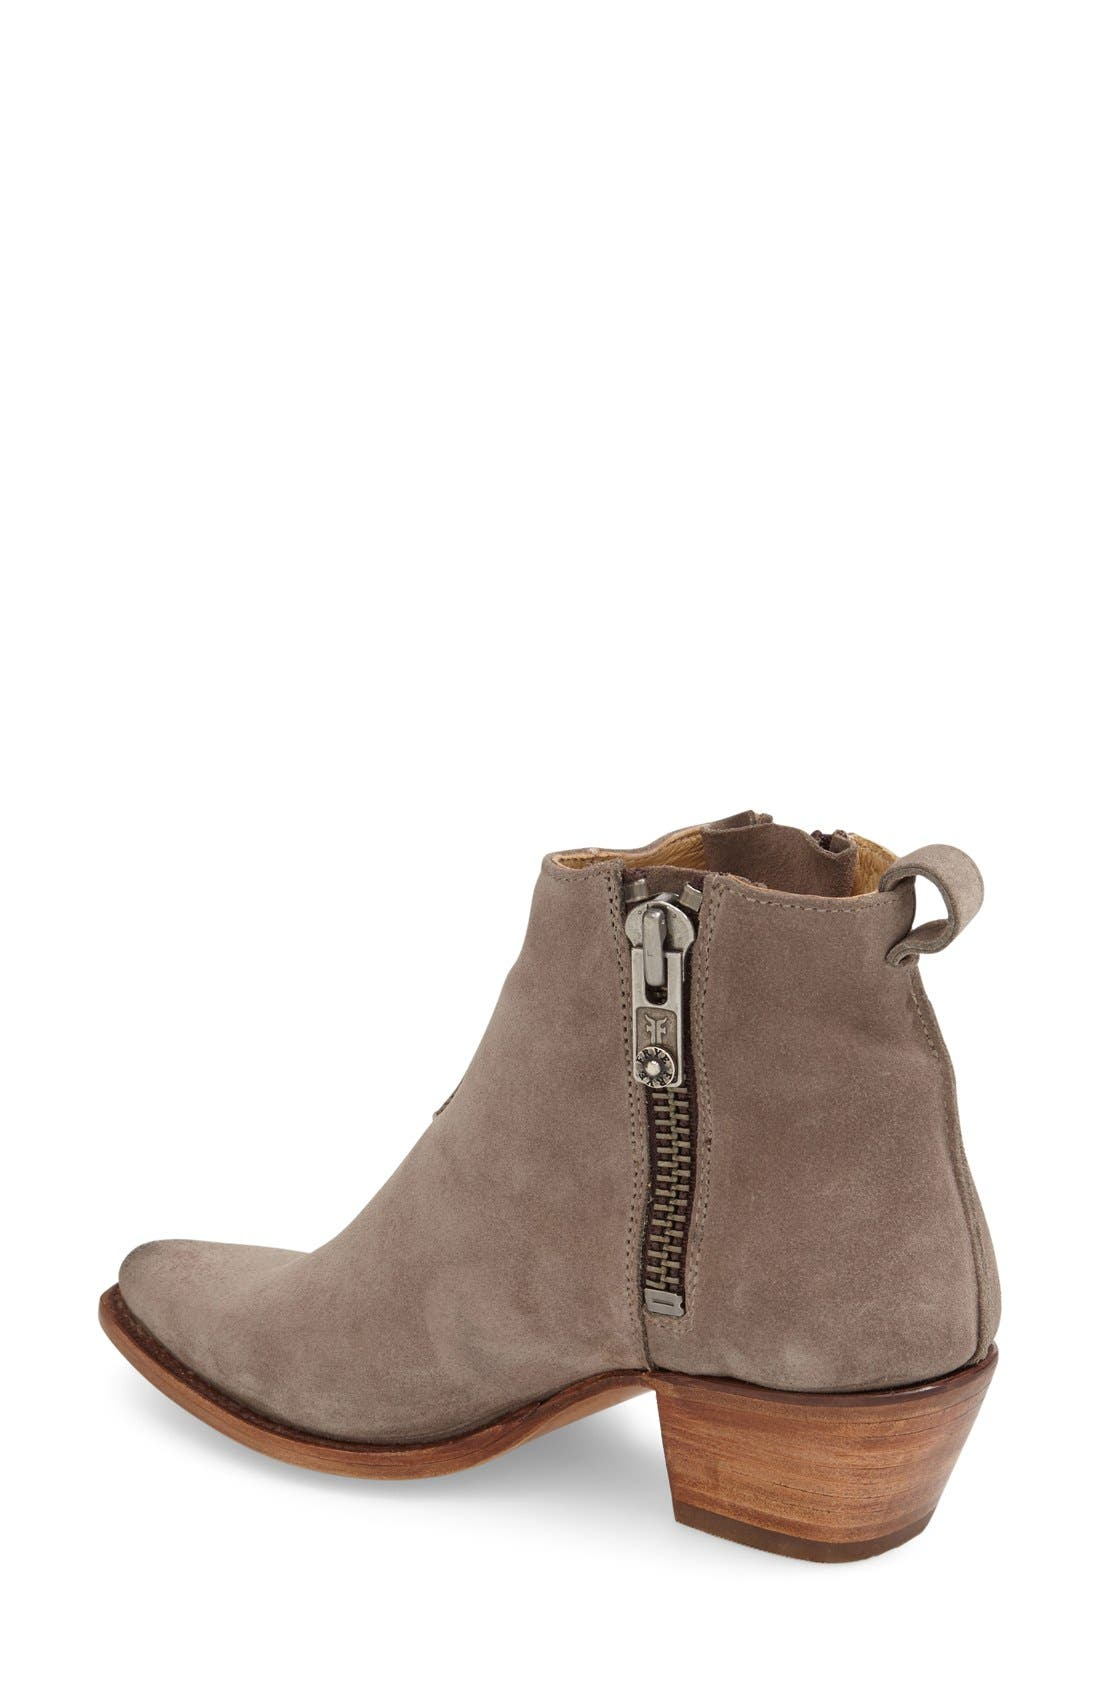 Alternate Image 2  - Frye 'Sacha' Washed Leather Ankle Boot (Women)